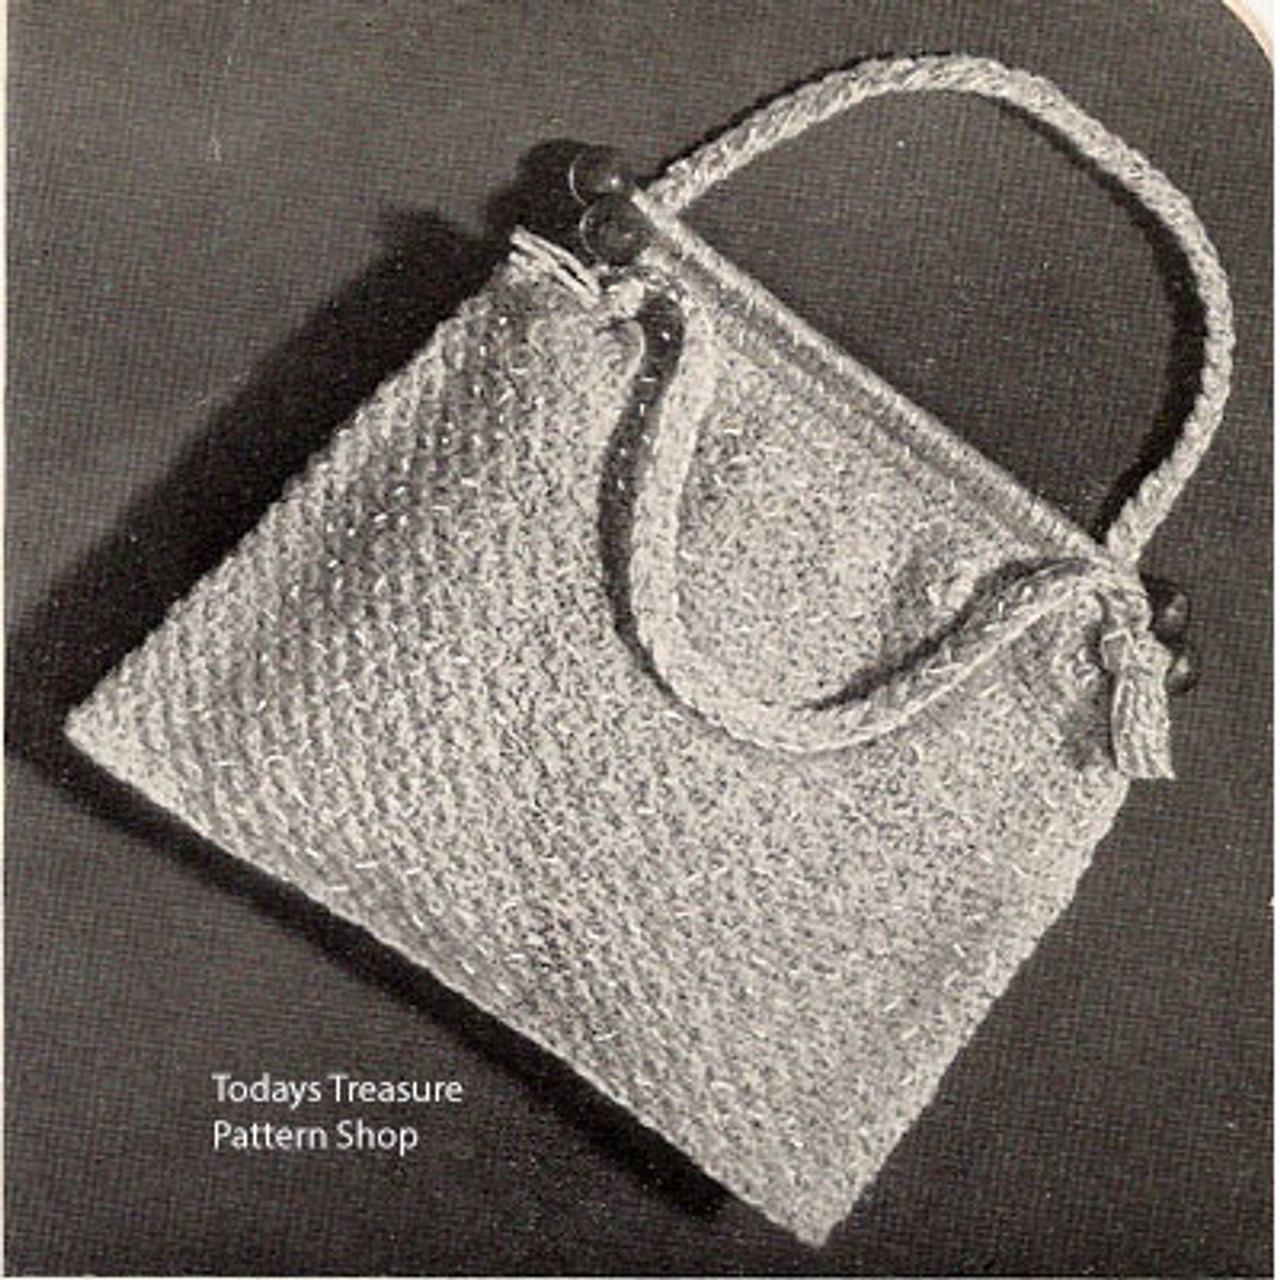 Crochet Utility Bag Pattern for Knitting